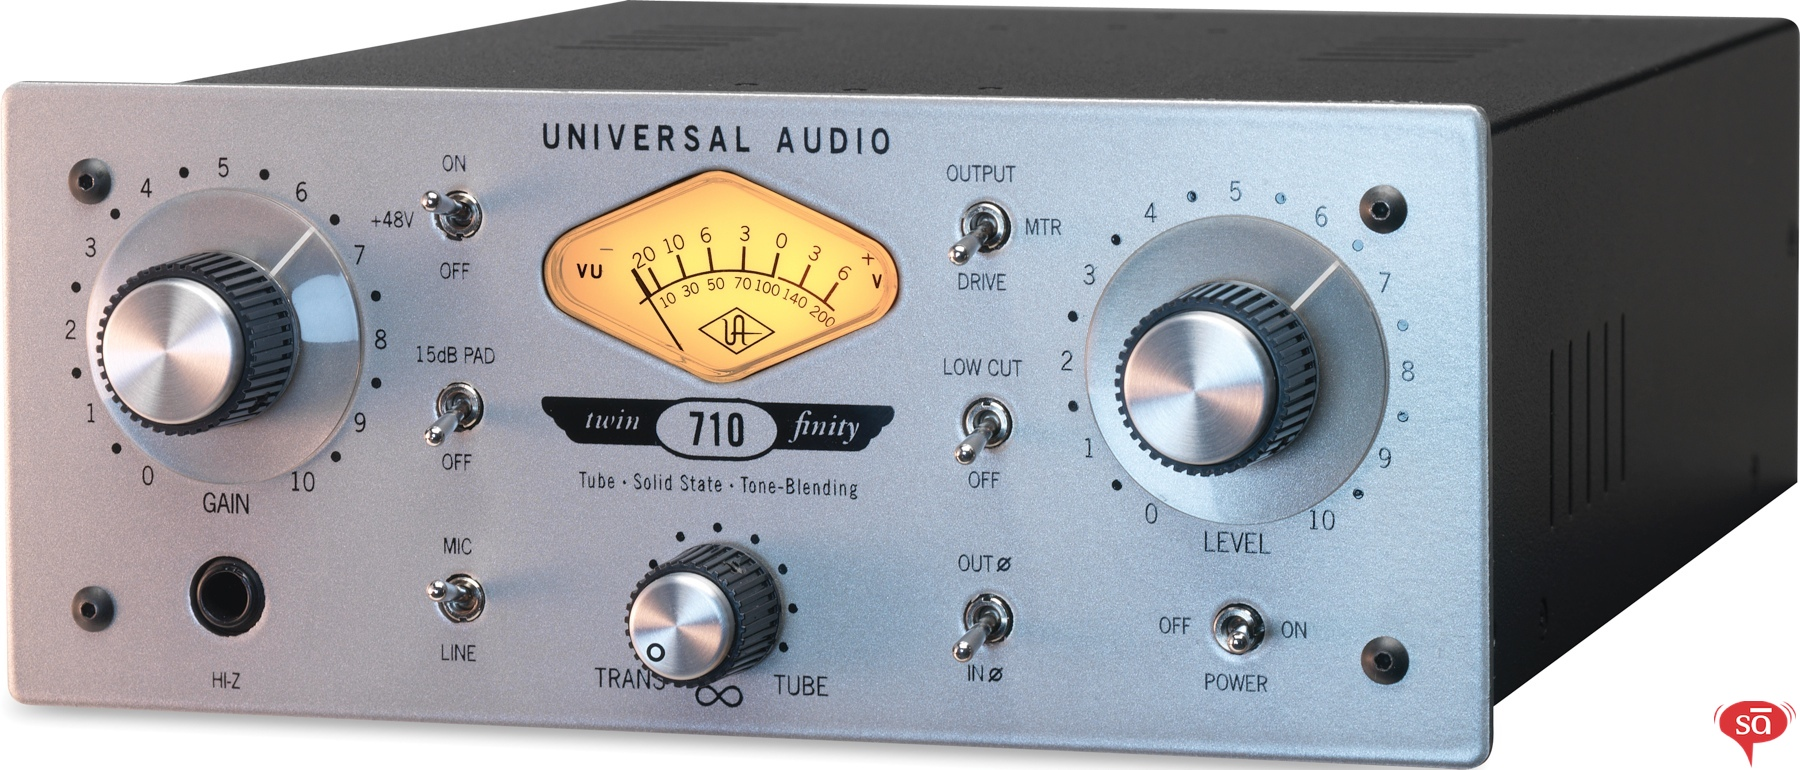 Universal Audio 710 Twin-Finity Tone-Blending Mic